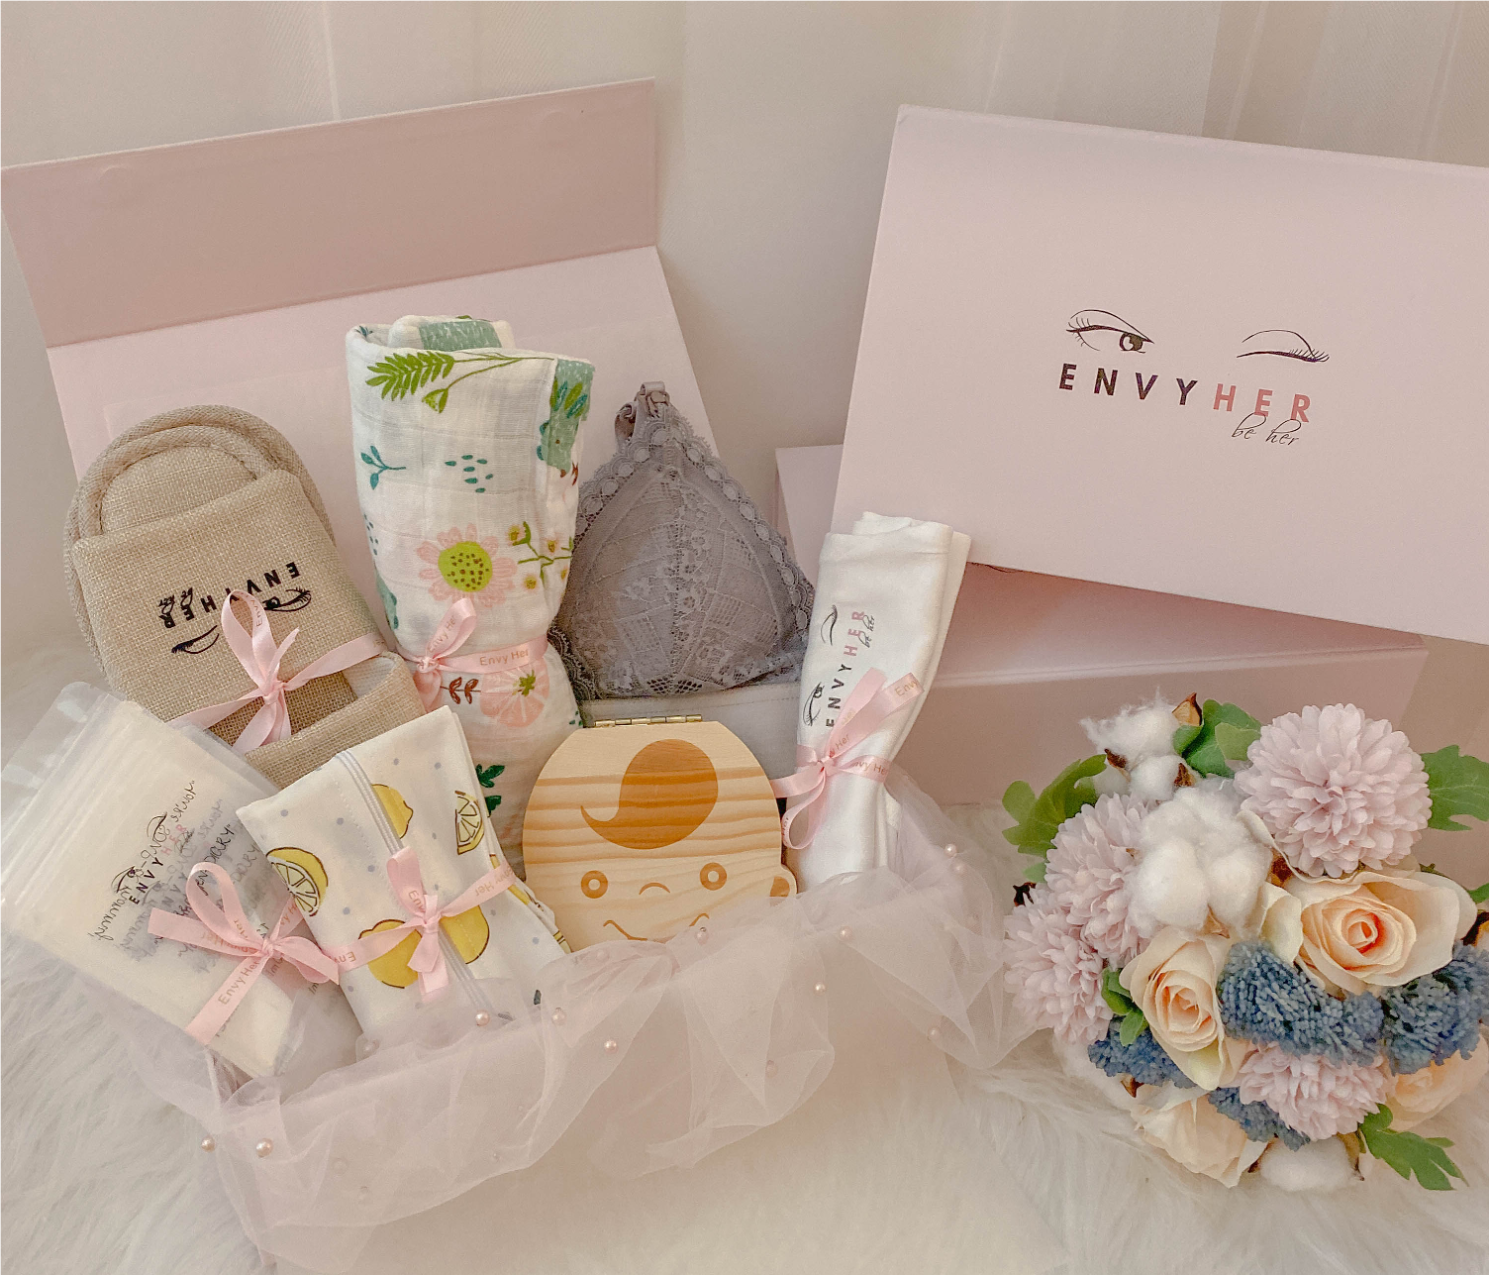 Envy Her Mom&Cub Gift Box (WITH MATERNITY BRALETTE